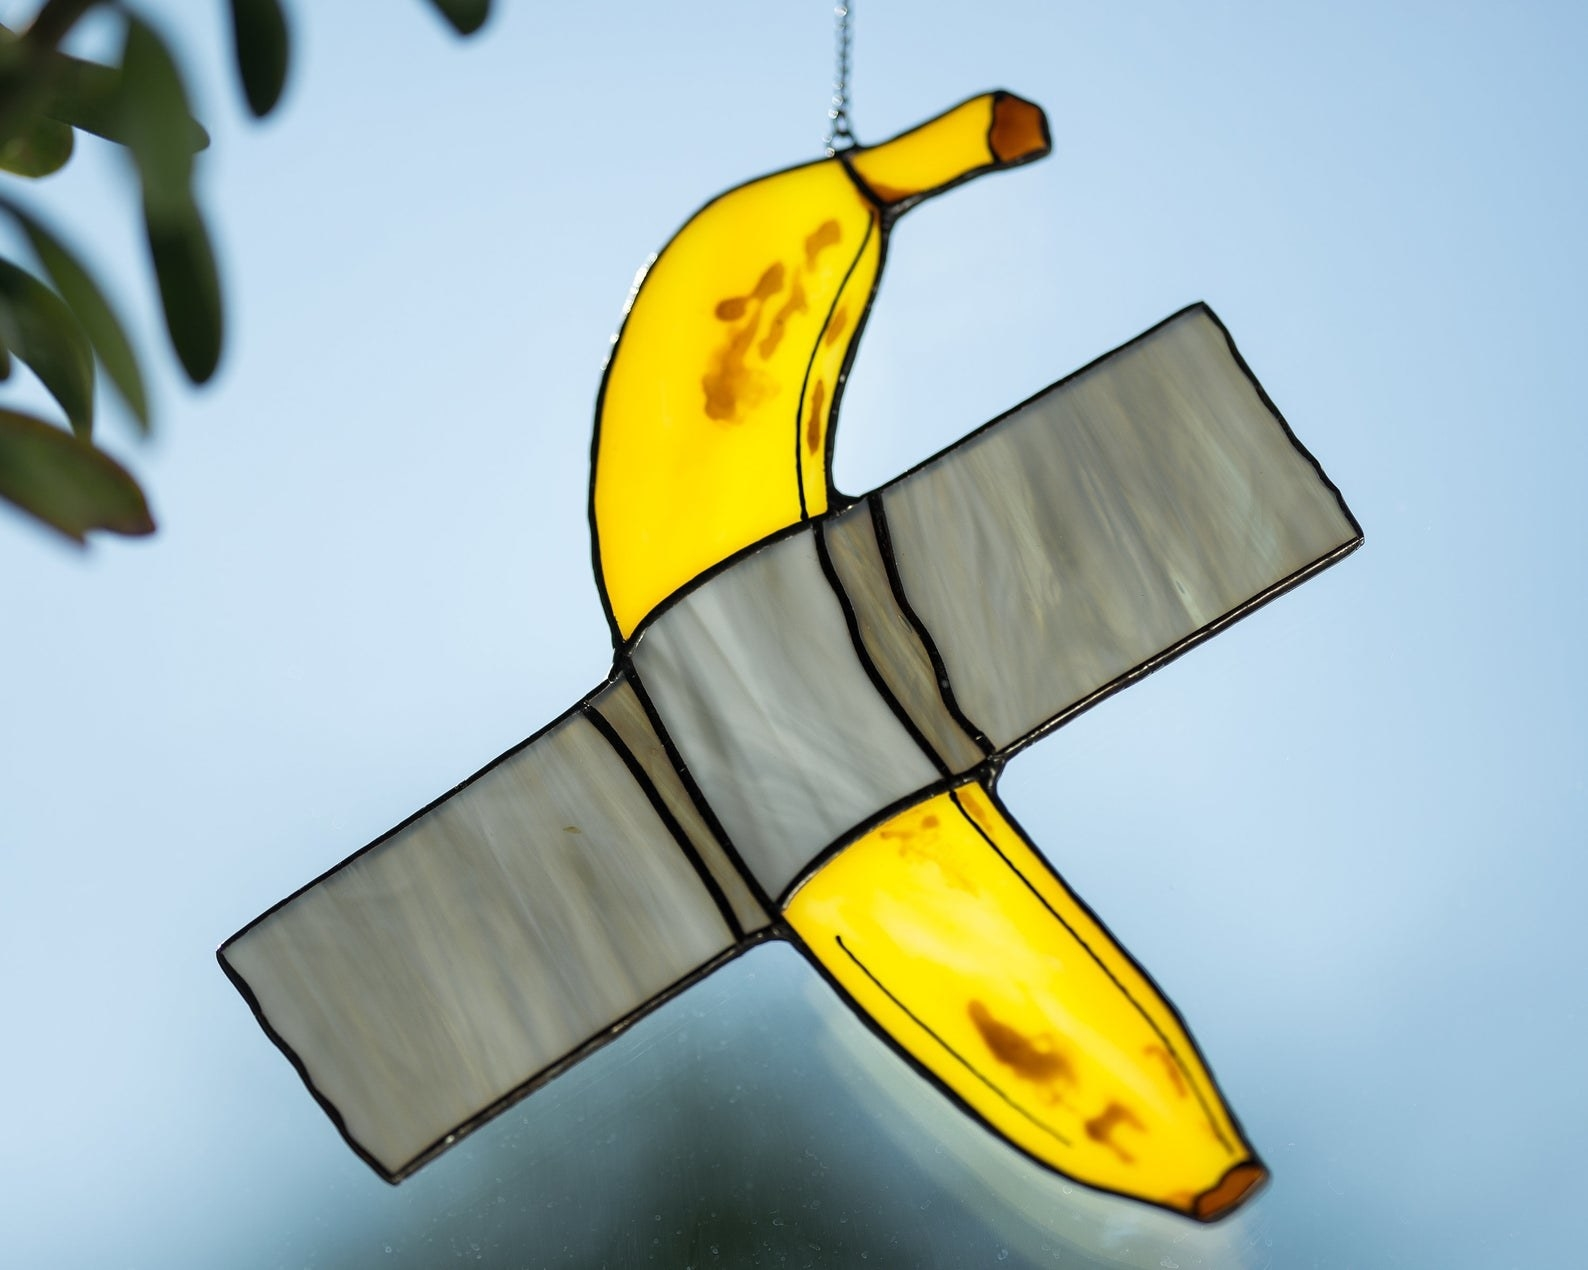 the yellow banana and duct tape stained glass